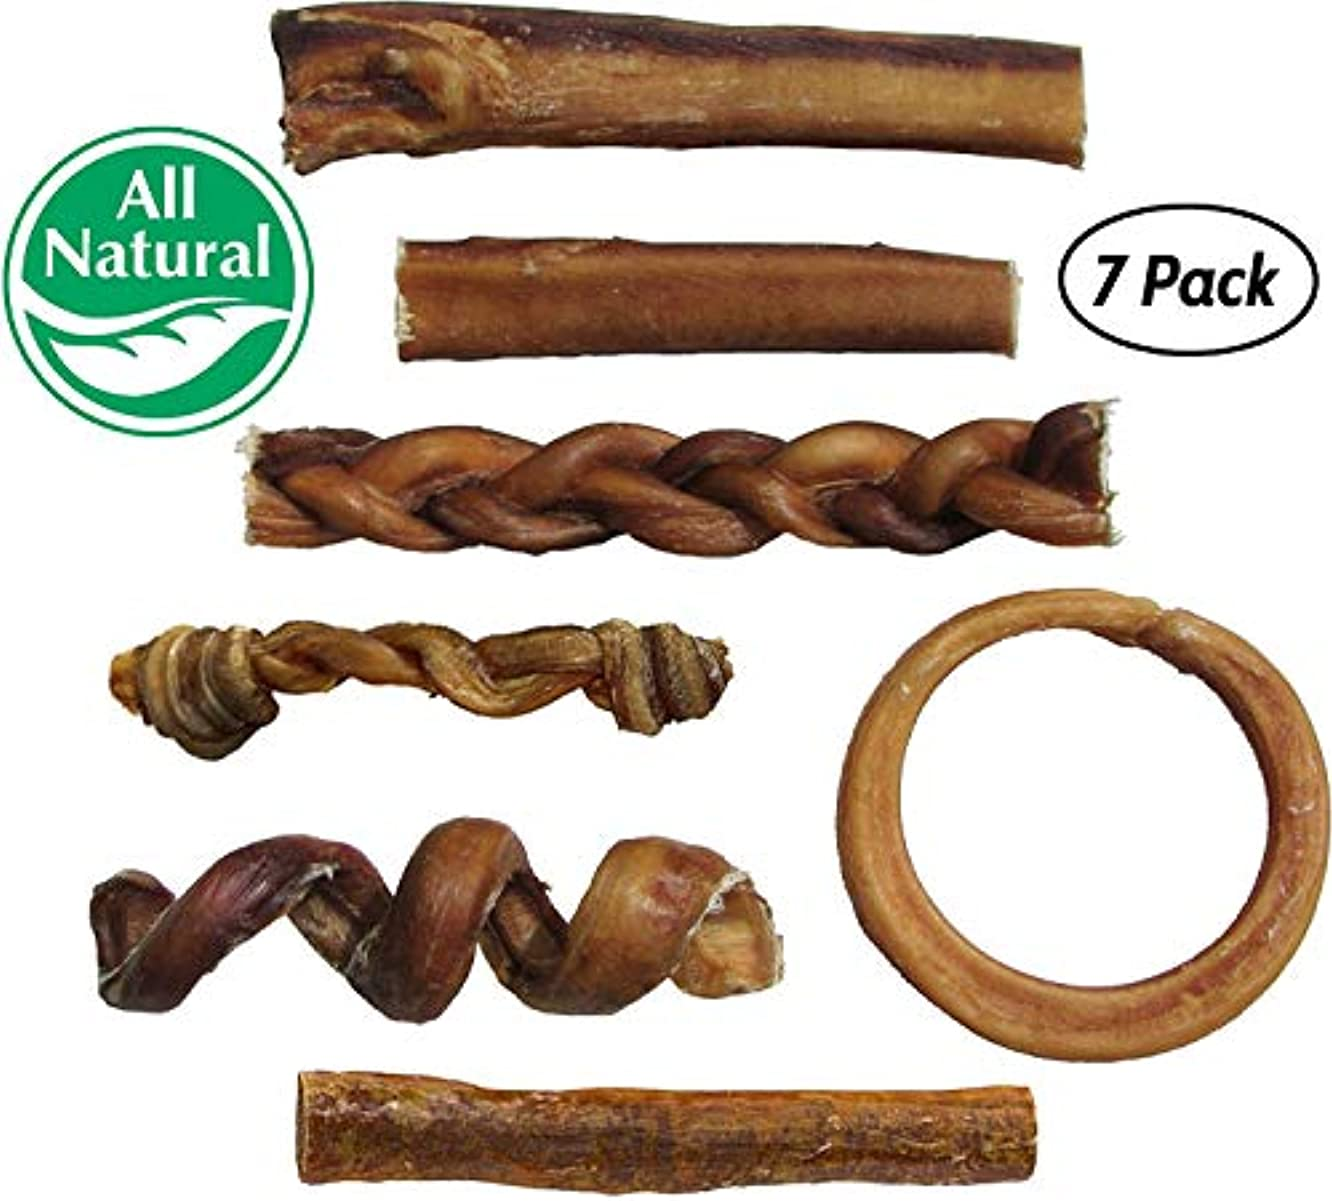 Bully Stick Variety Pack for Dogs | Best Mix of Natural Low-Odor Beef Stix | Pizzle Dental Treat Chews: Straight, Braided, Ring, Spring, Barbell, Pretzel, etc.